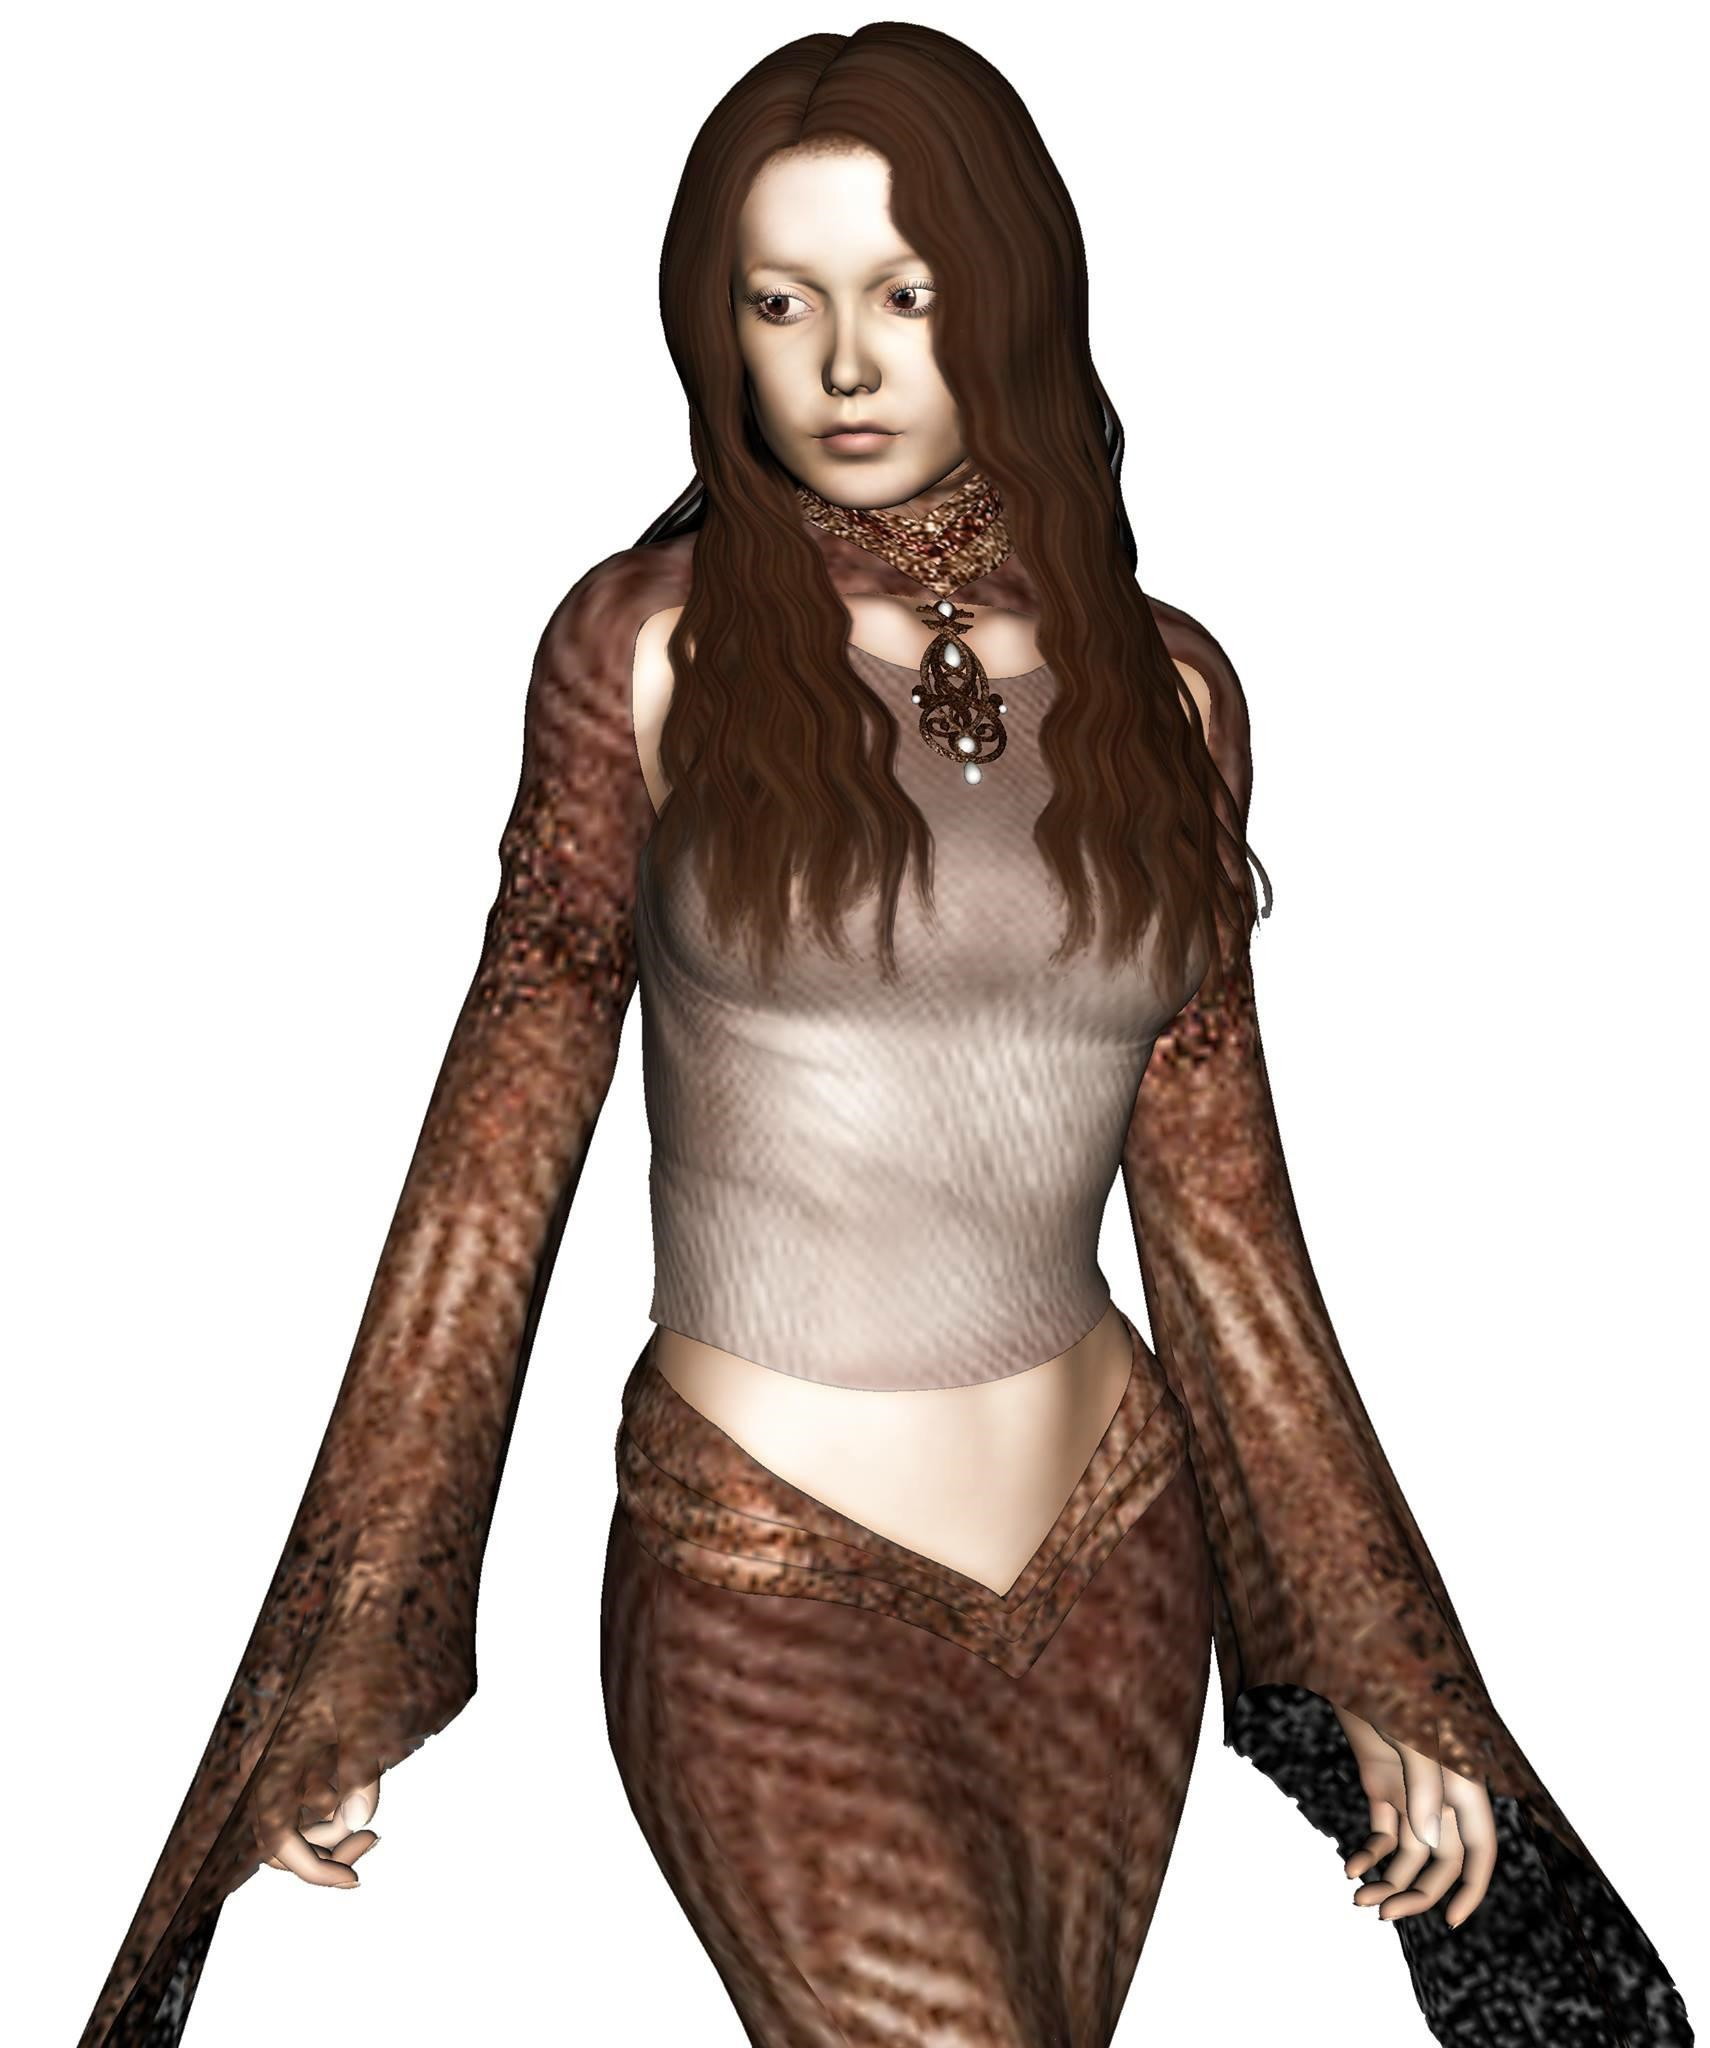 Figure 4. River's first outfit, later to be rejected.